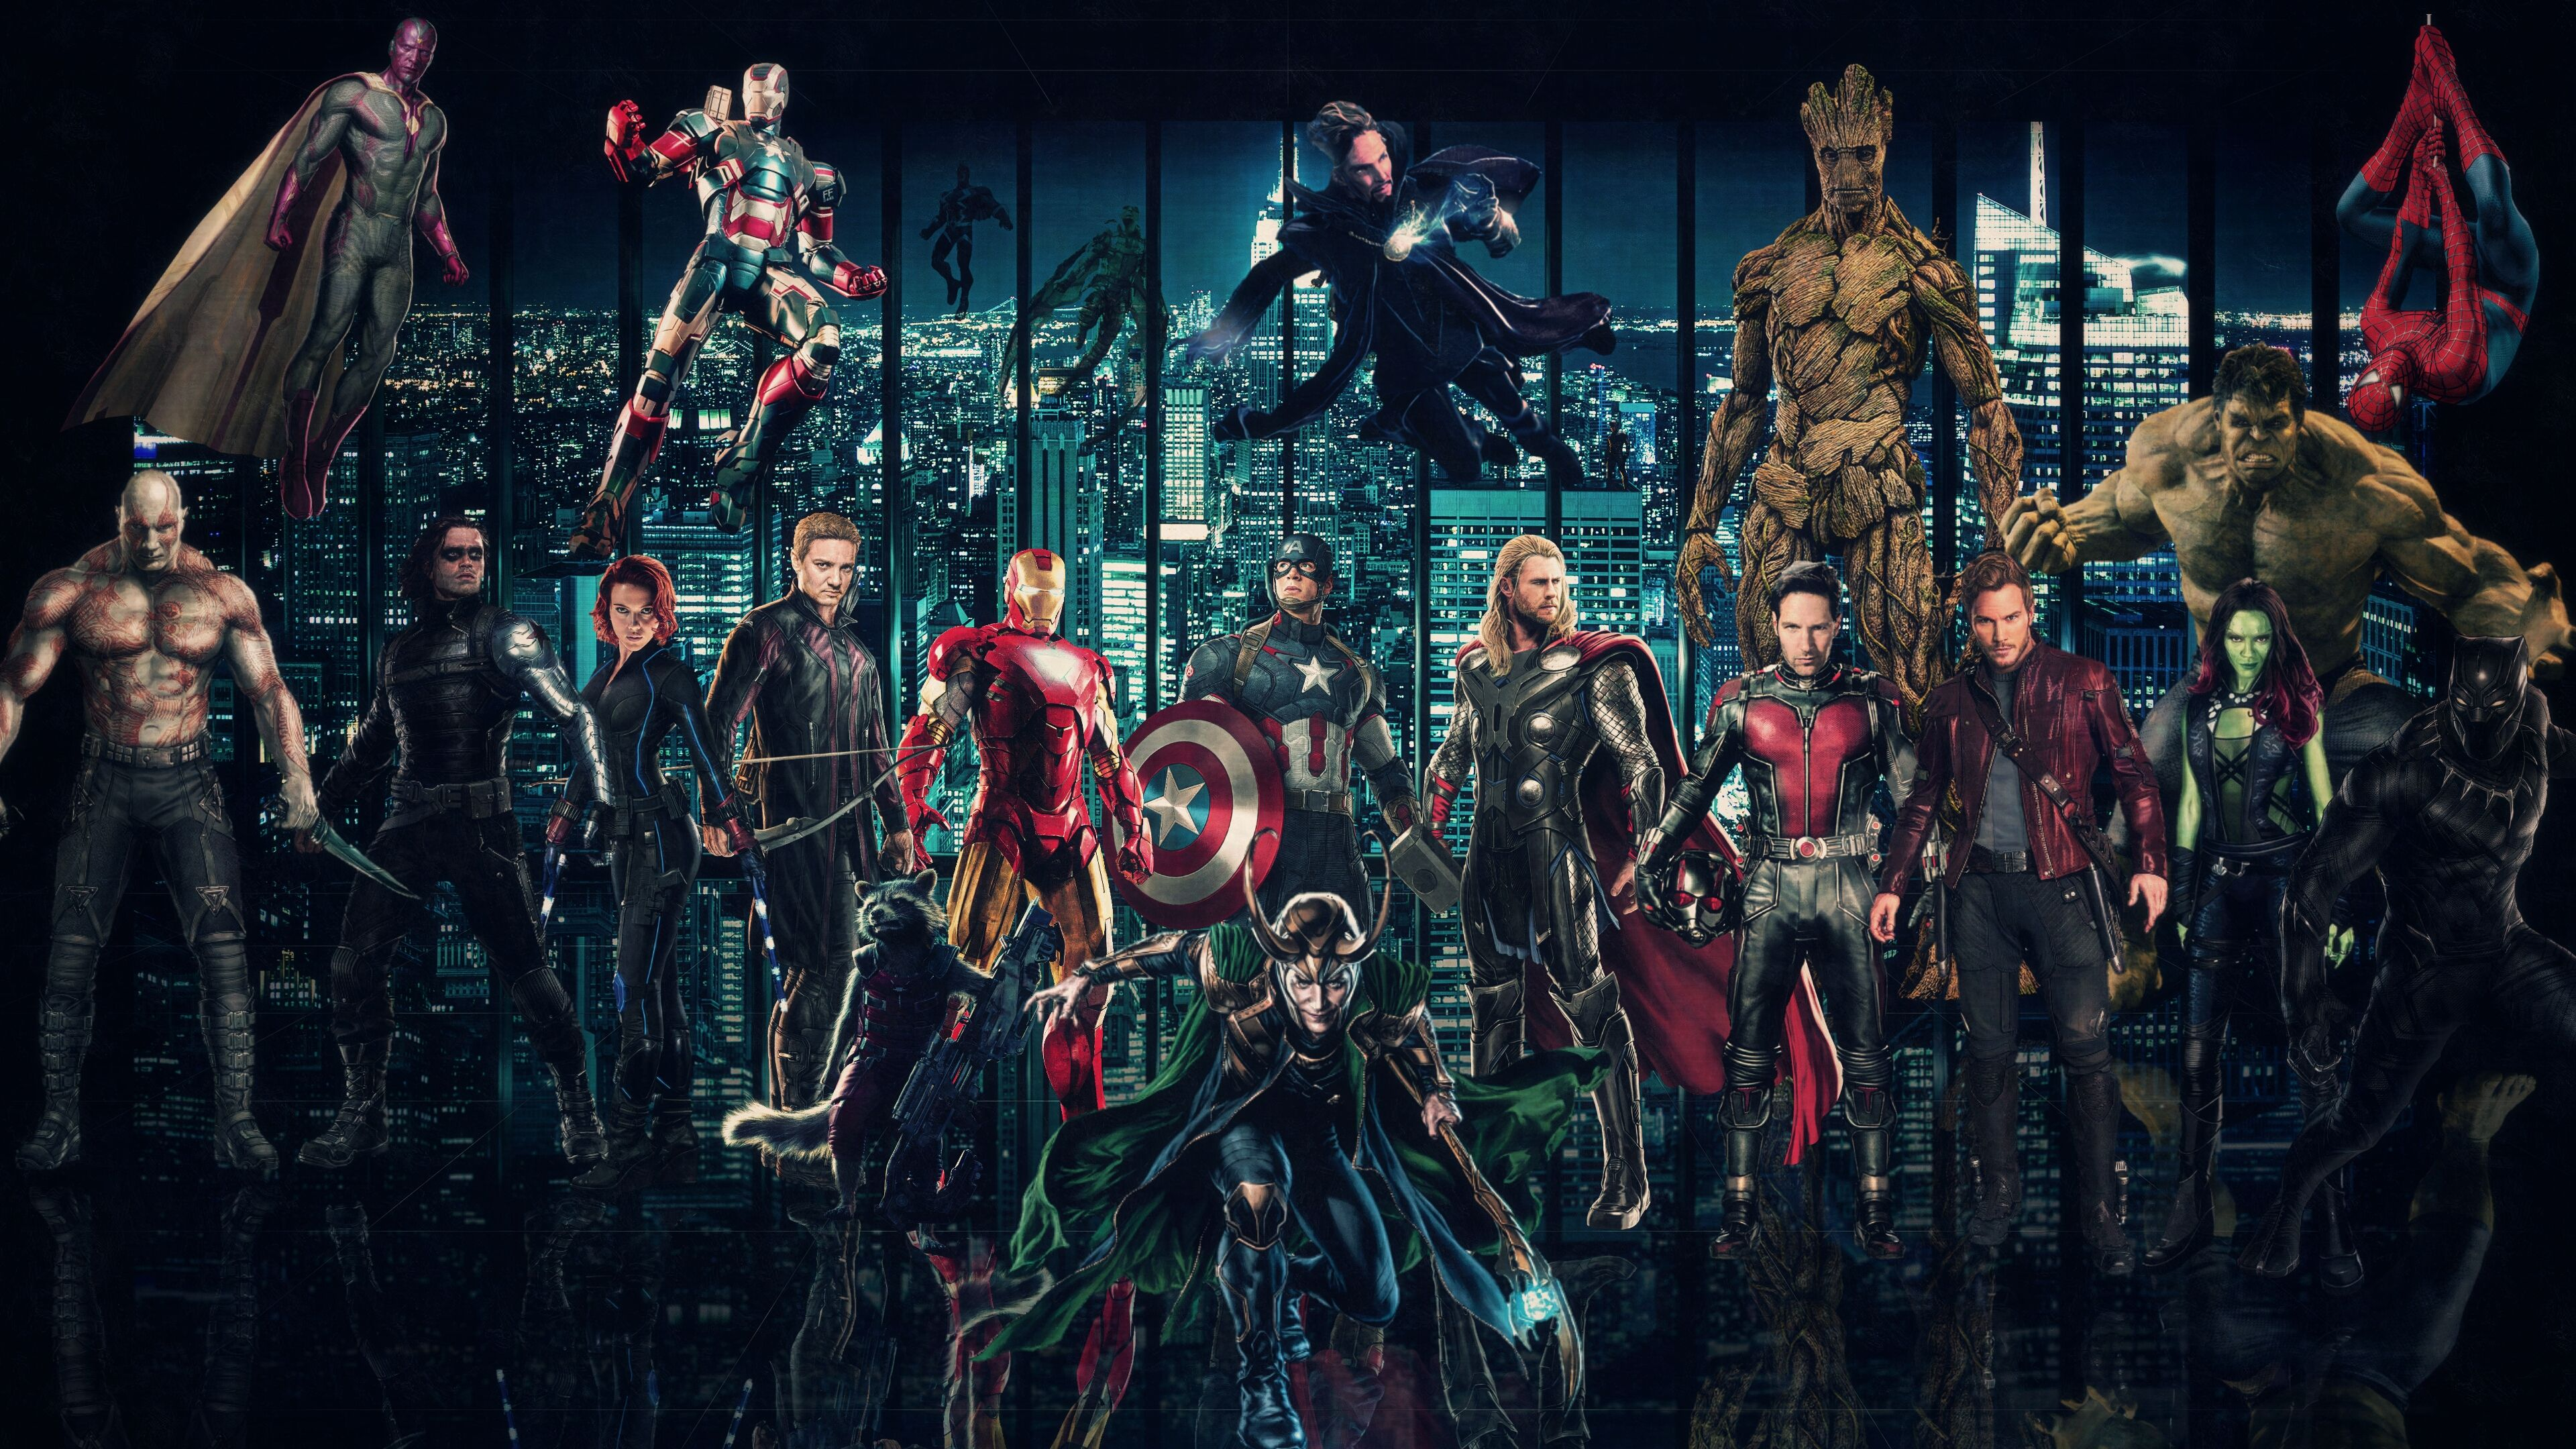 Pin By Arliegh Emata On Marvel Cinematic Universe Avengers Marvel